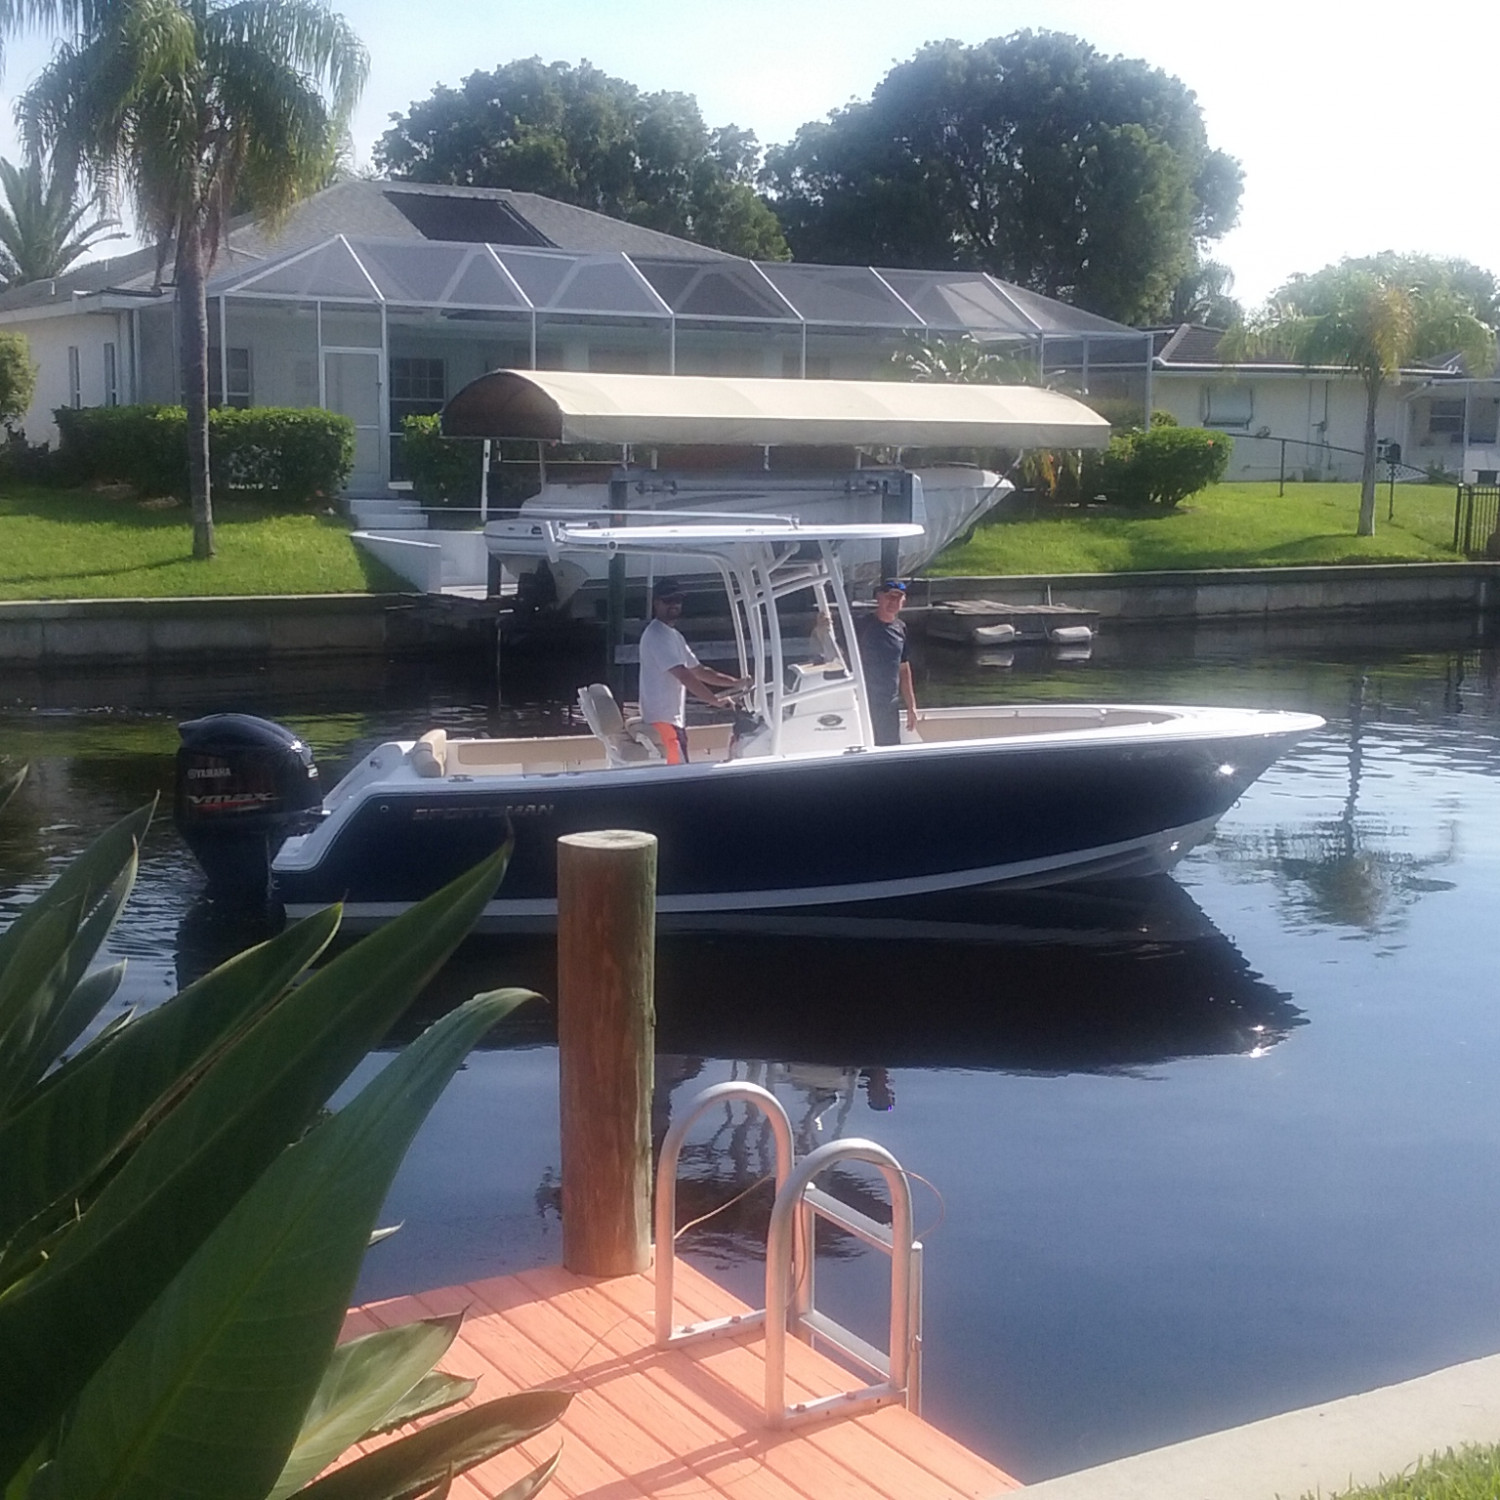 Title: Cruising through the neighborhood - On board their Sportsman Heritage 231 Center Console - Location: Cape Coral, FL. Participating in the Photo Contest #SportsmanFebruary2018